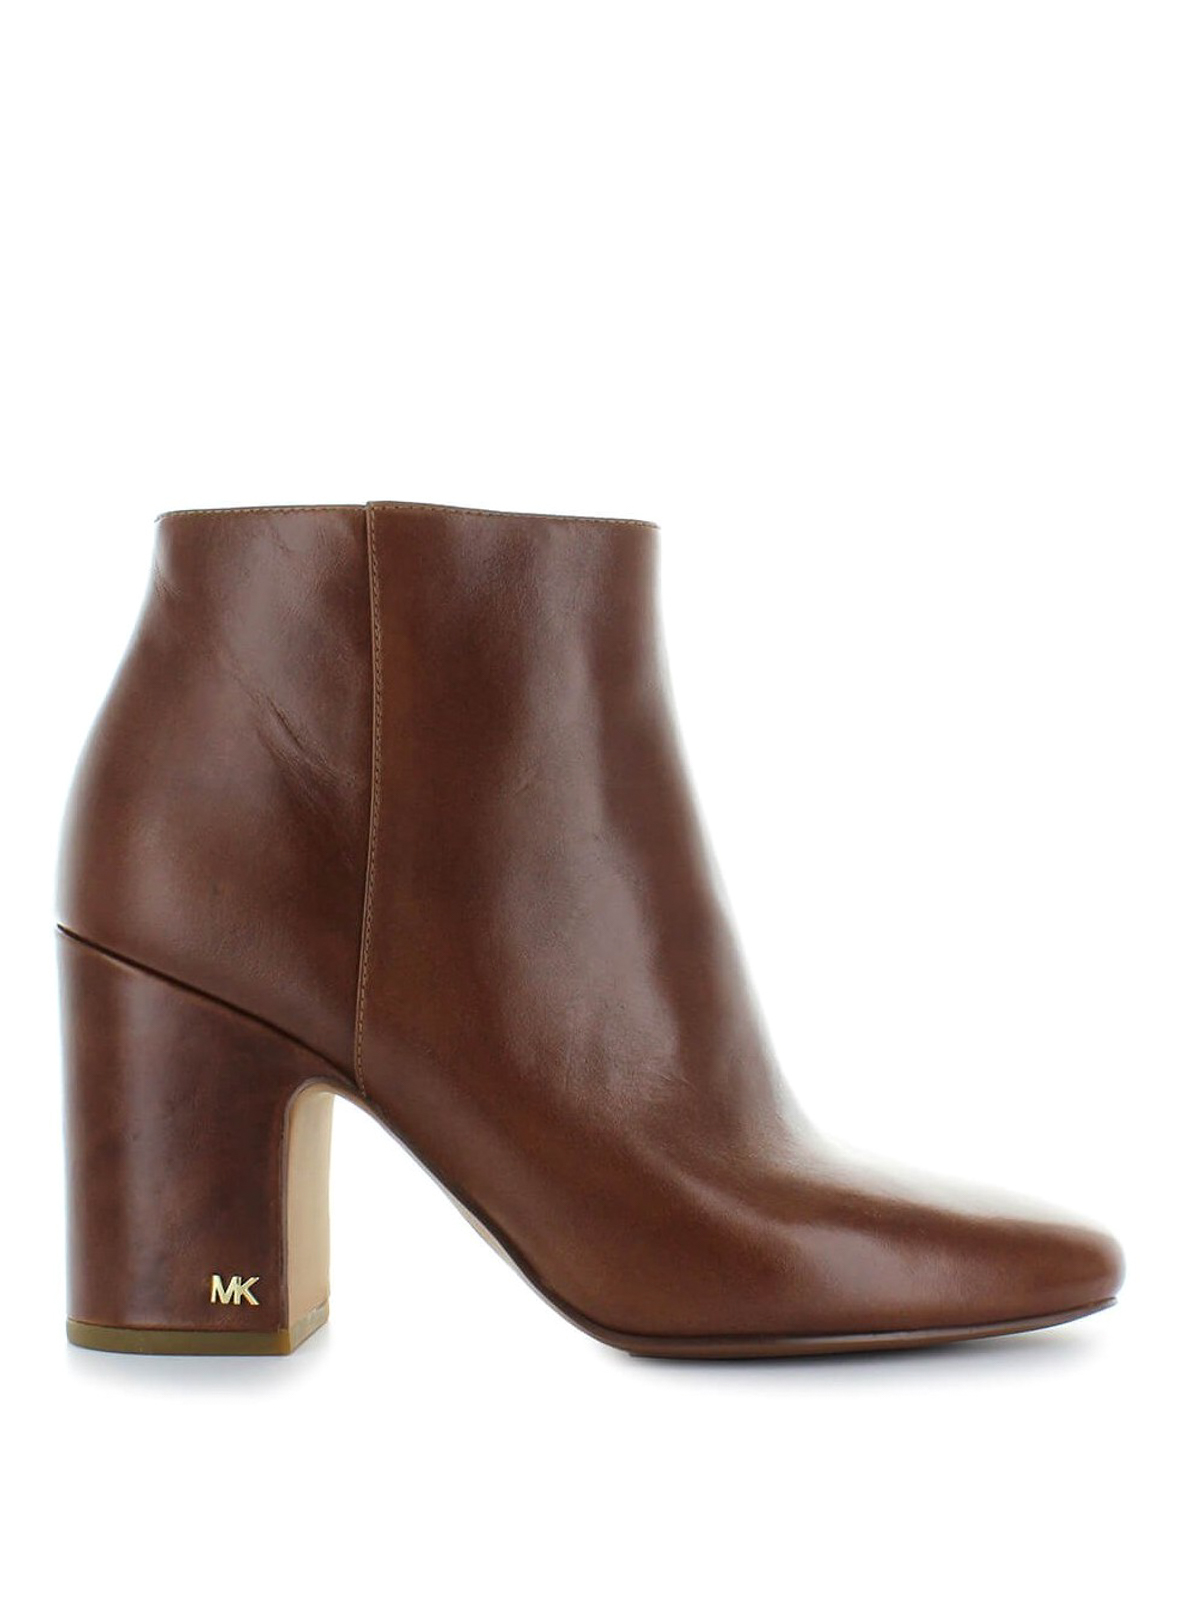 Michael Kors Elaine Thick Heel Glossy Leather Booties Ankle Heels Boots